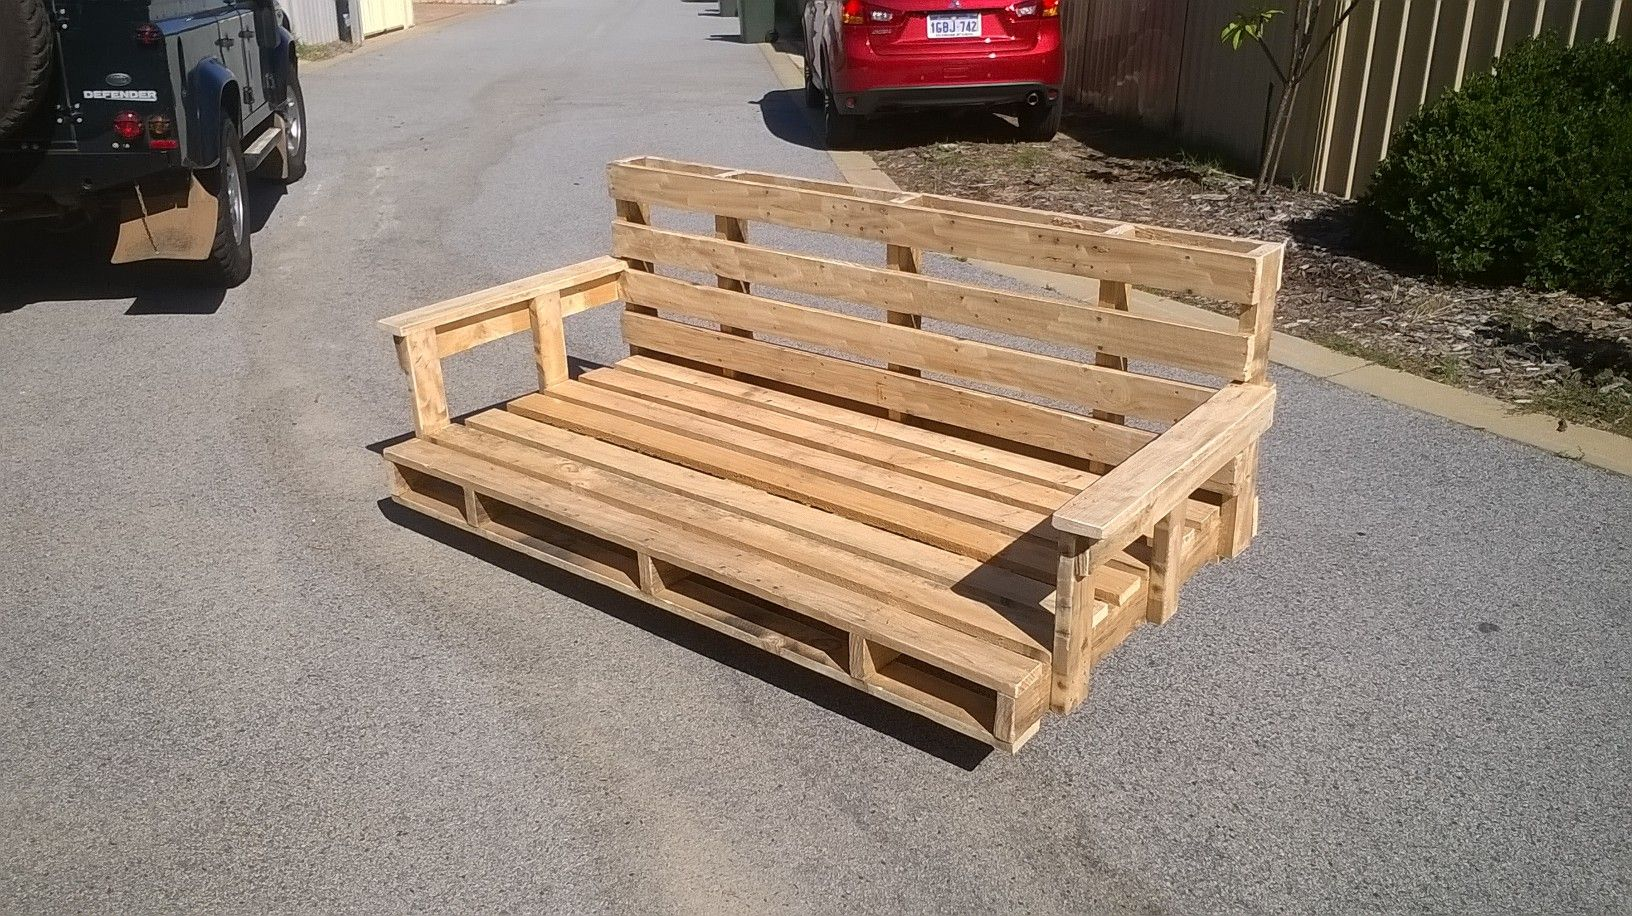 Large Pallet Swing Seat Holds A Single Mattress  # Muebles Tipo Wimpy